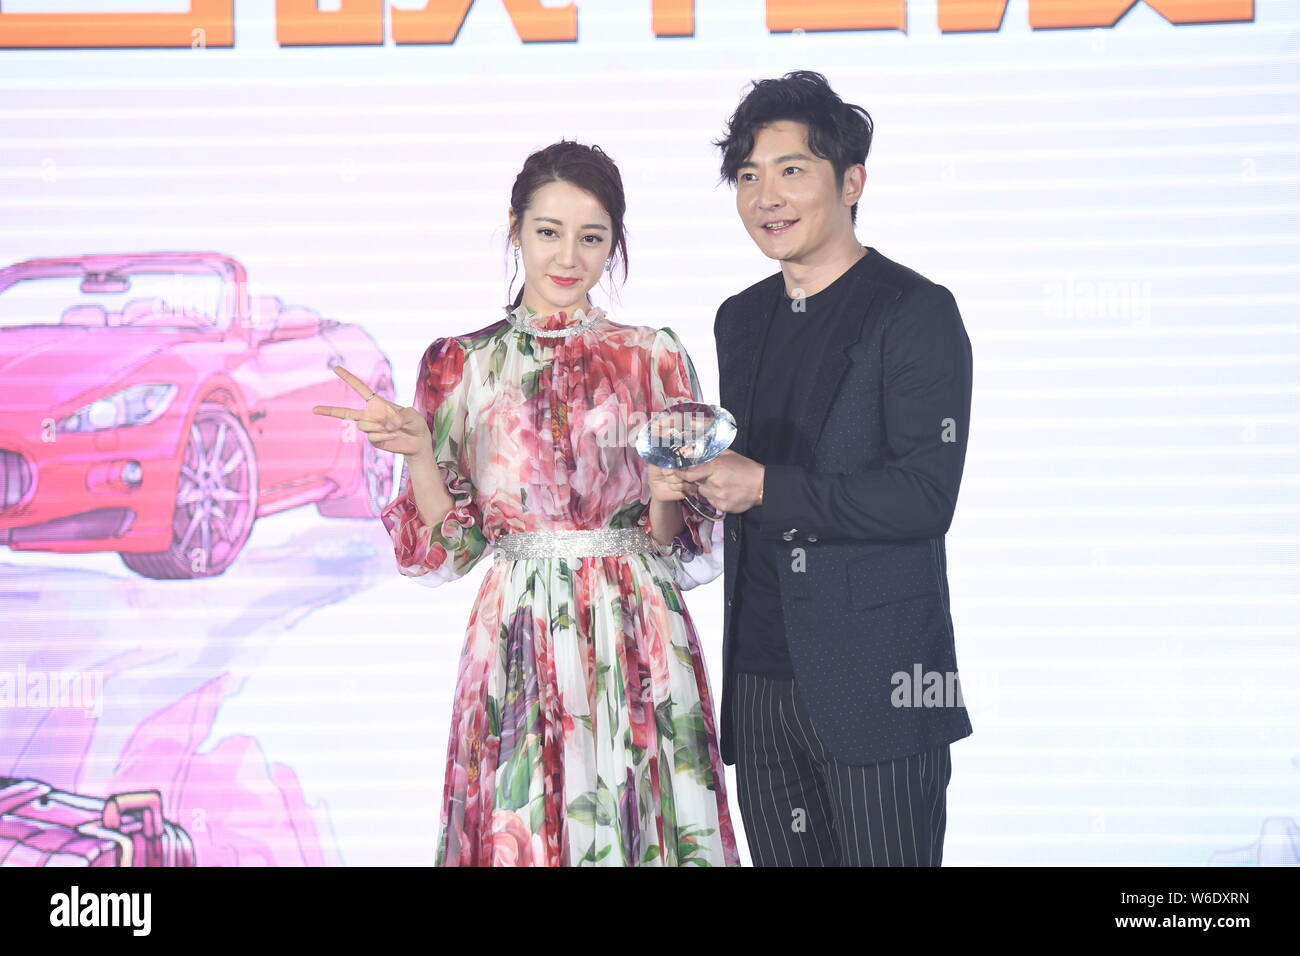 """Chinese Uigur actress Dilraba Dilmurat and Chinese actor Guo Jingfei attend the premiere event for the movie """"21 Karat"""" in Beijing, China, 16 April 20 Stock Photo"""